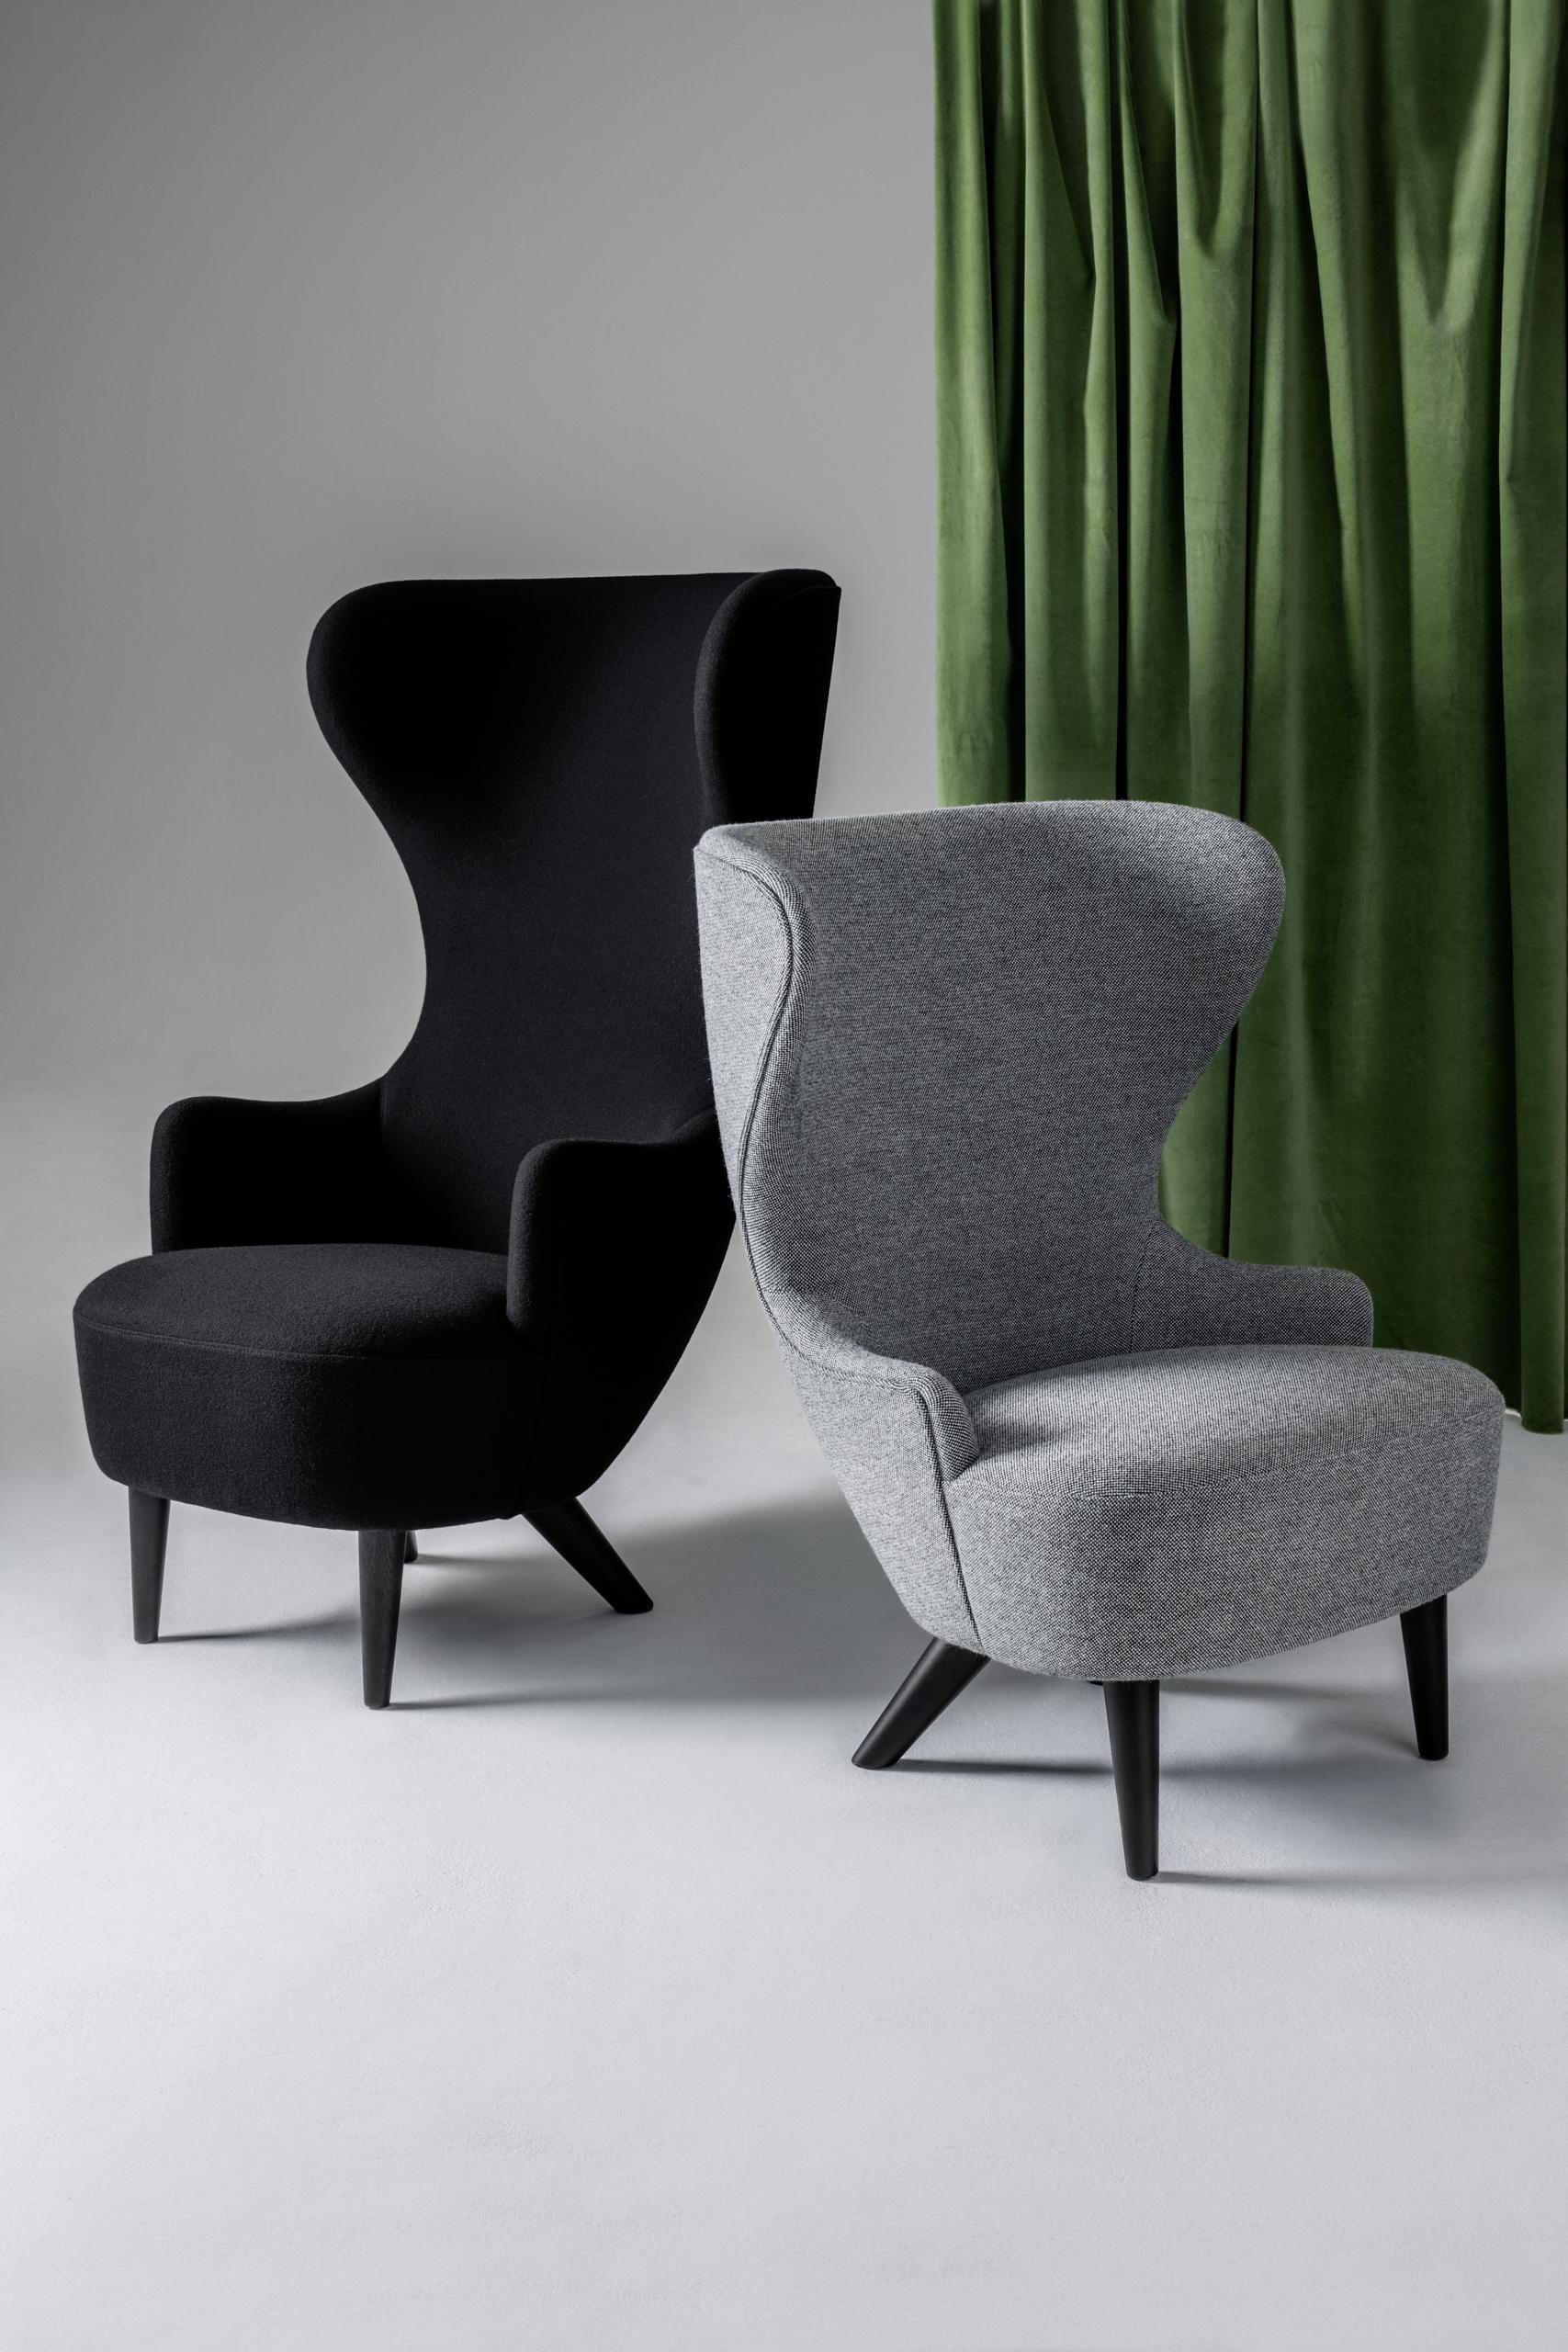 Wingback Chair With Black Legs By Tom Dixon